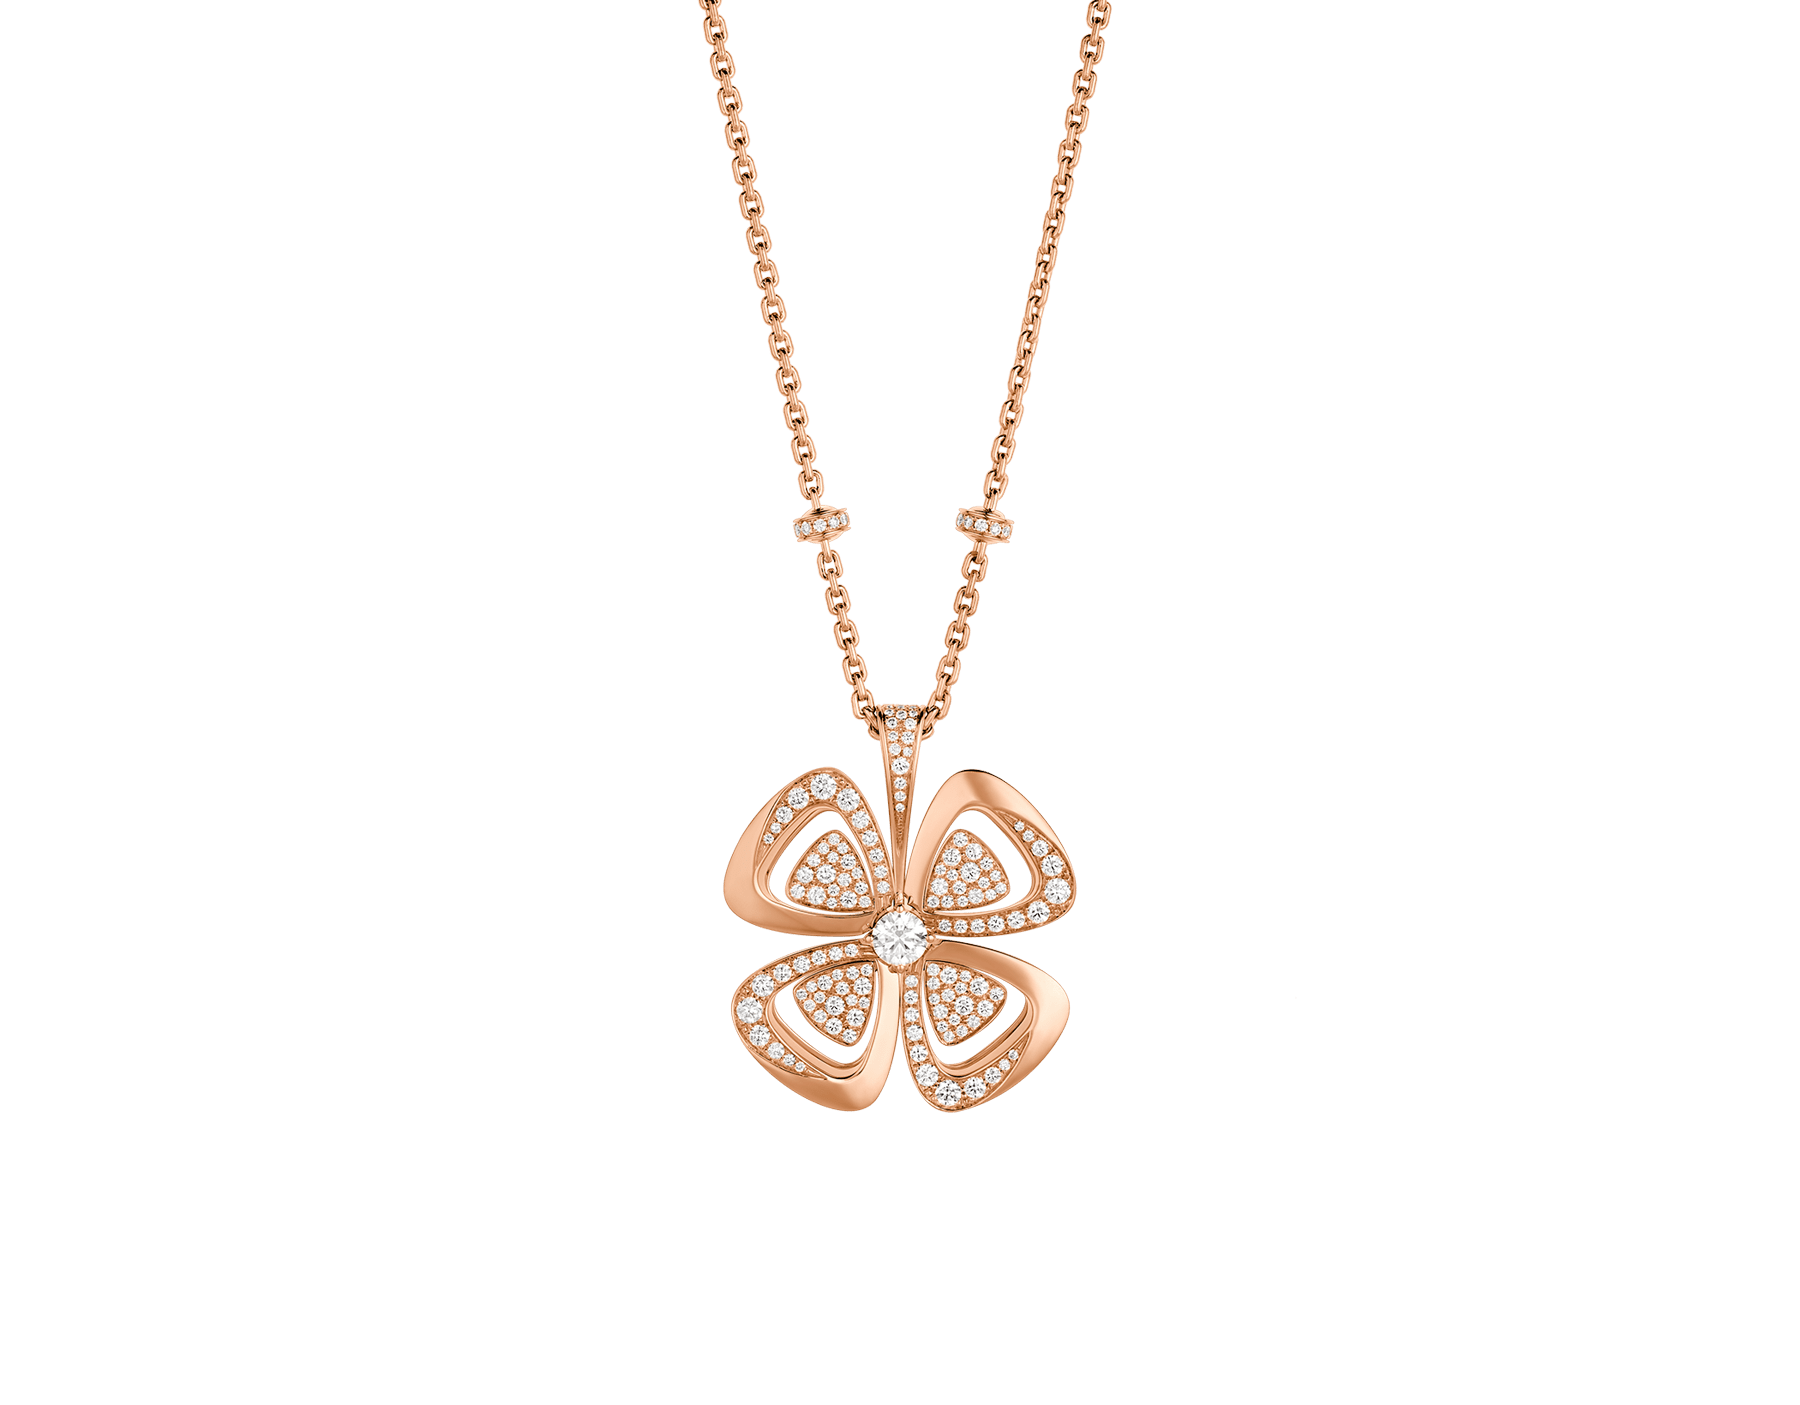 Fiorever 18 kt rose gold necklace set with a central round brilliant-cut diamond and pavé diamonds. 357218 image 1